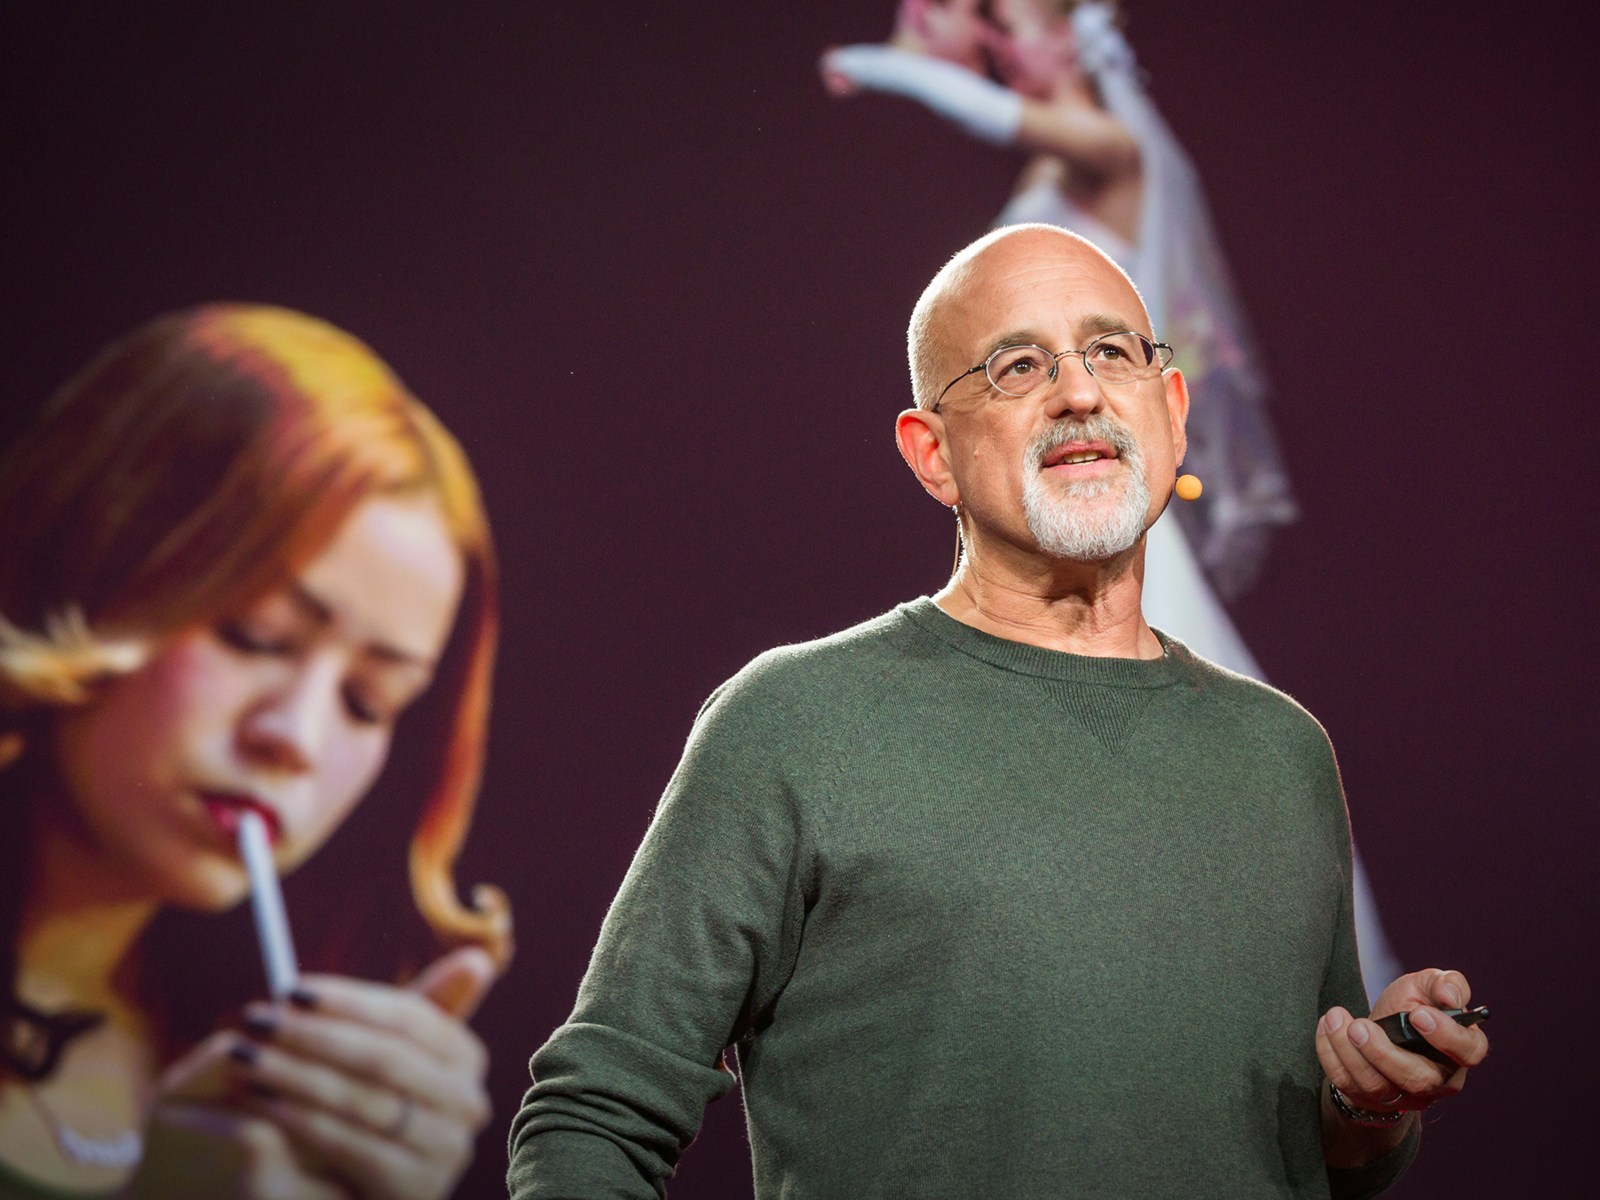 Dan Gilbert: The psychology of your future self | Talk Video | TED.com